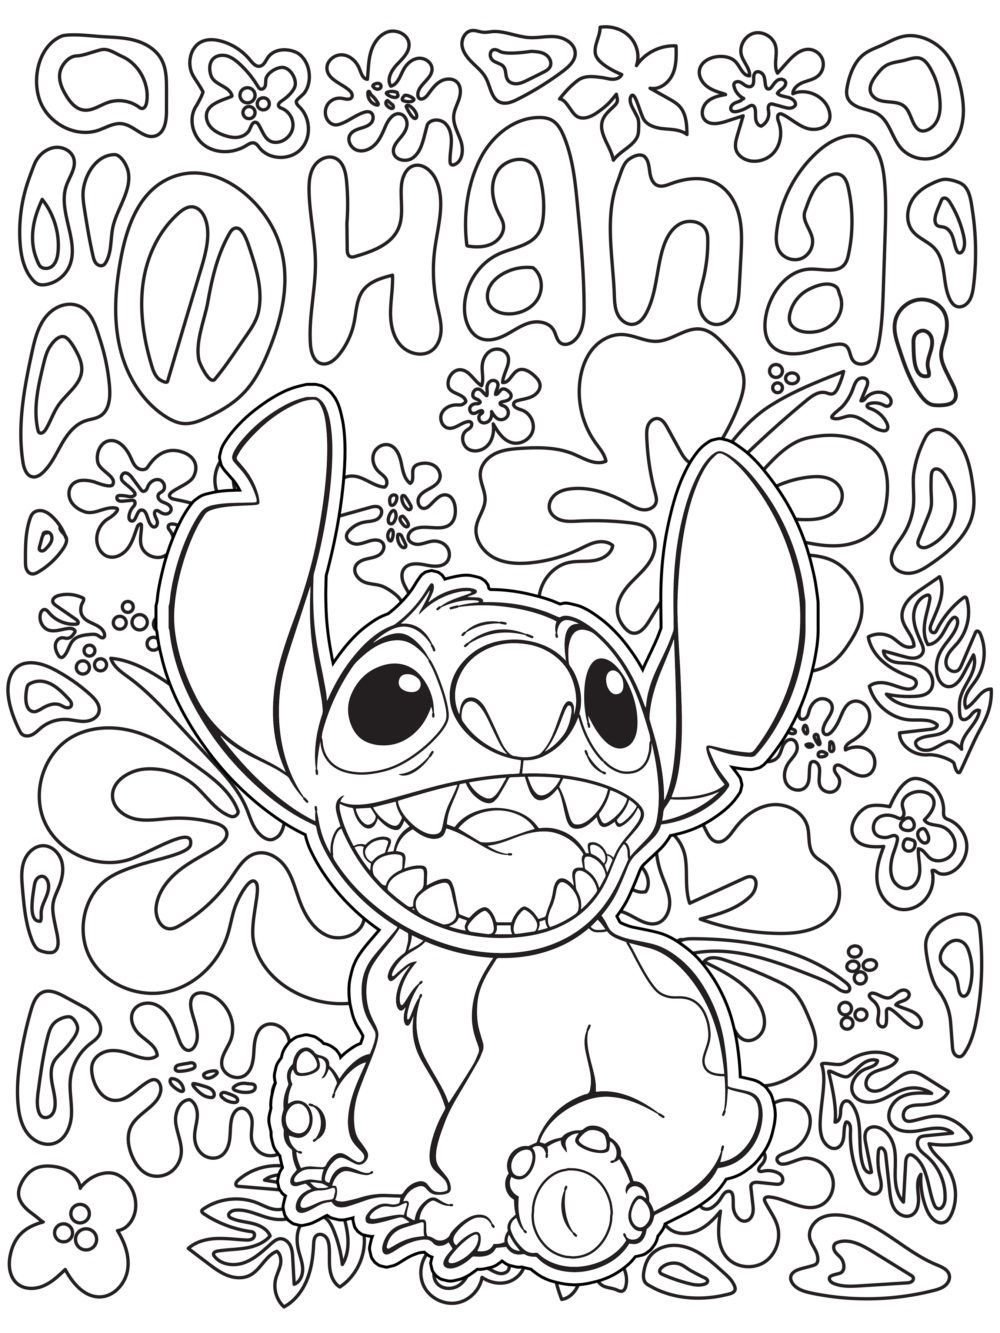 25 Inspired Picture Of Stress Relief Coloring Pages Disney Coloring Sheets Free Disney Coloring Pages Stitch Coloring Pages